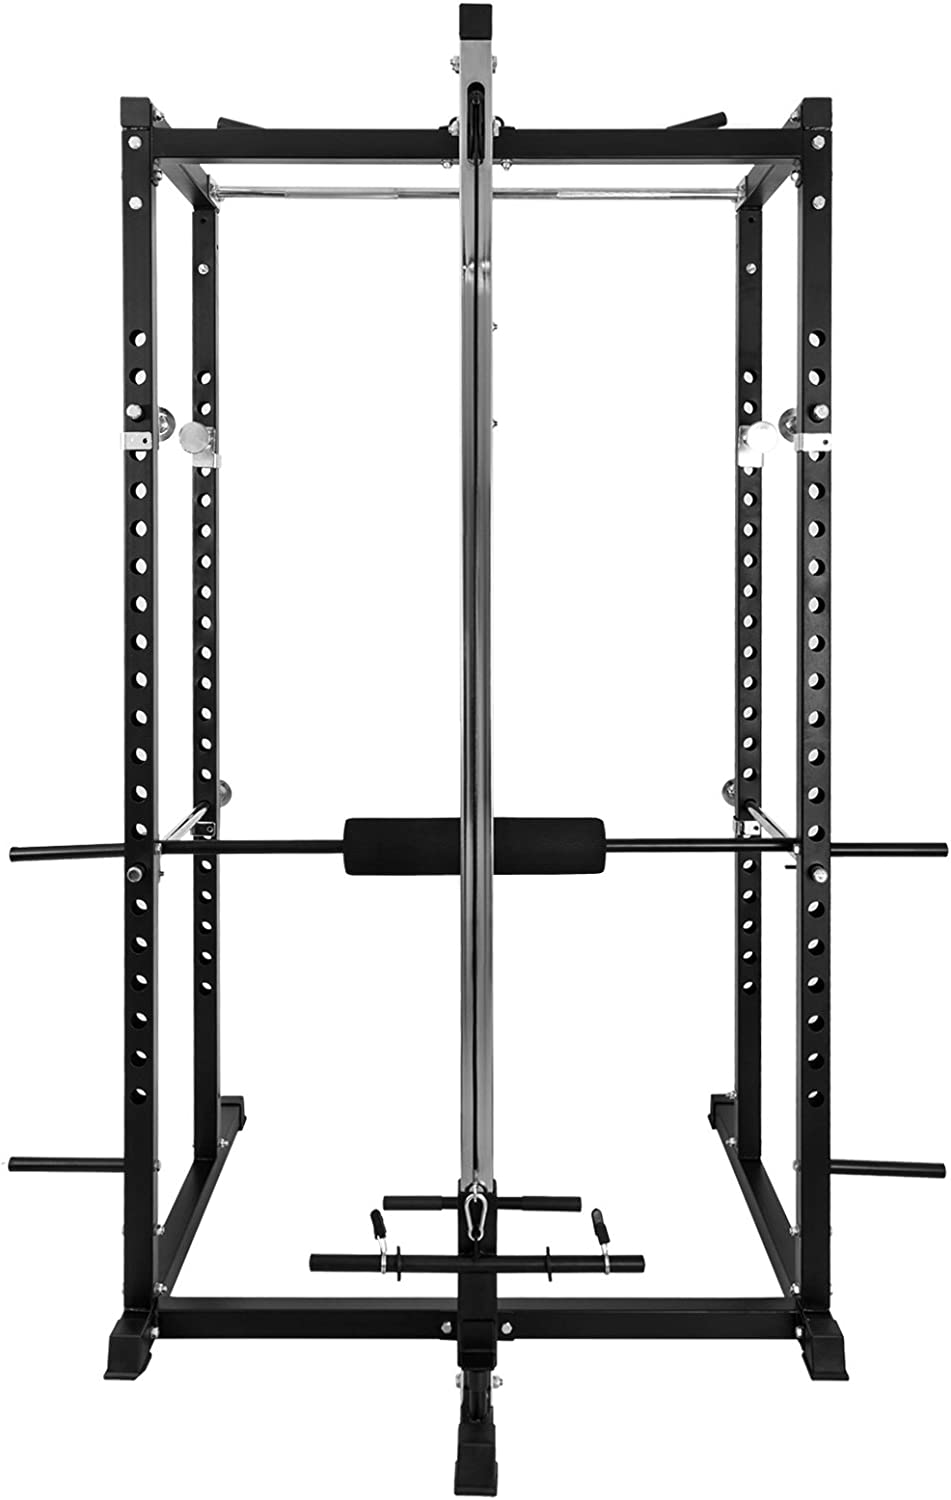 Popsport Power Rack Fitnes Strength Training Squat Rack Cage Bench Power Rack Cage Adjustable Bar for Fitness Muscle Building